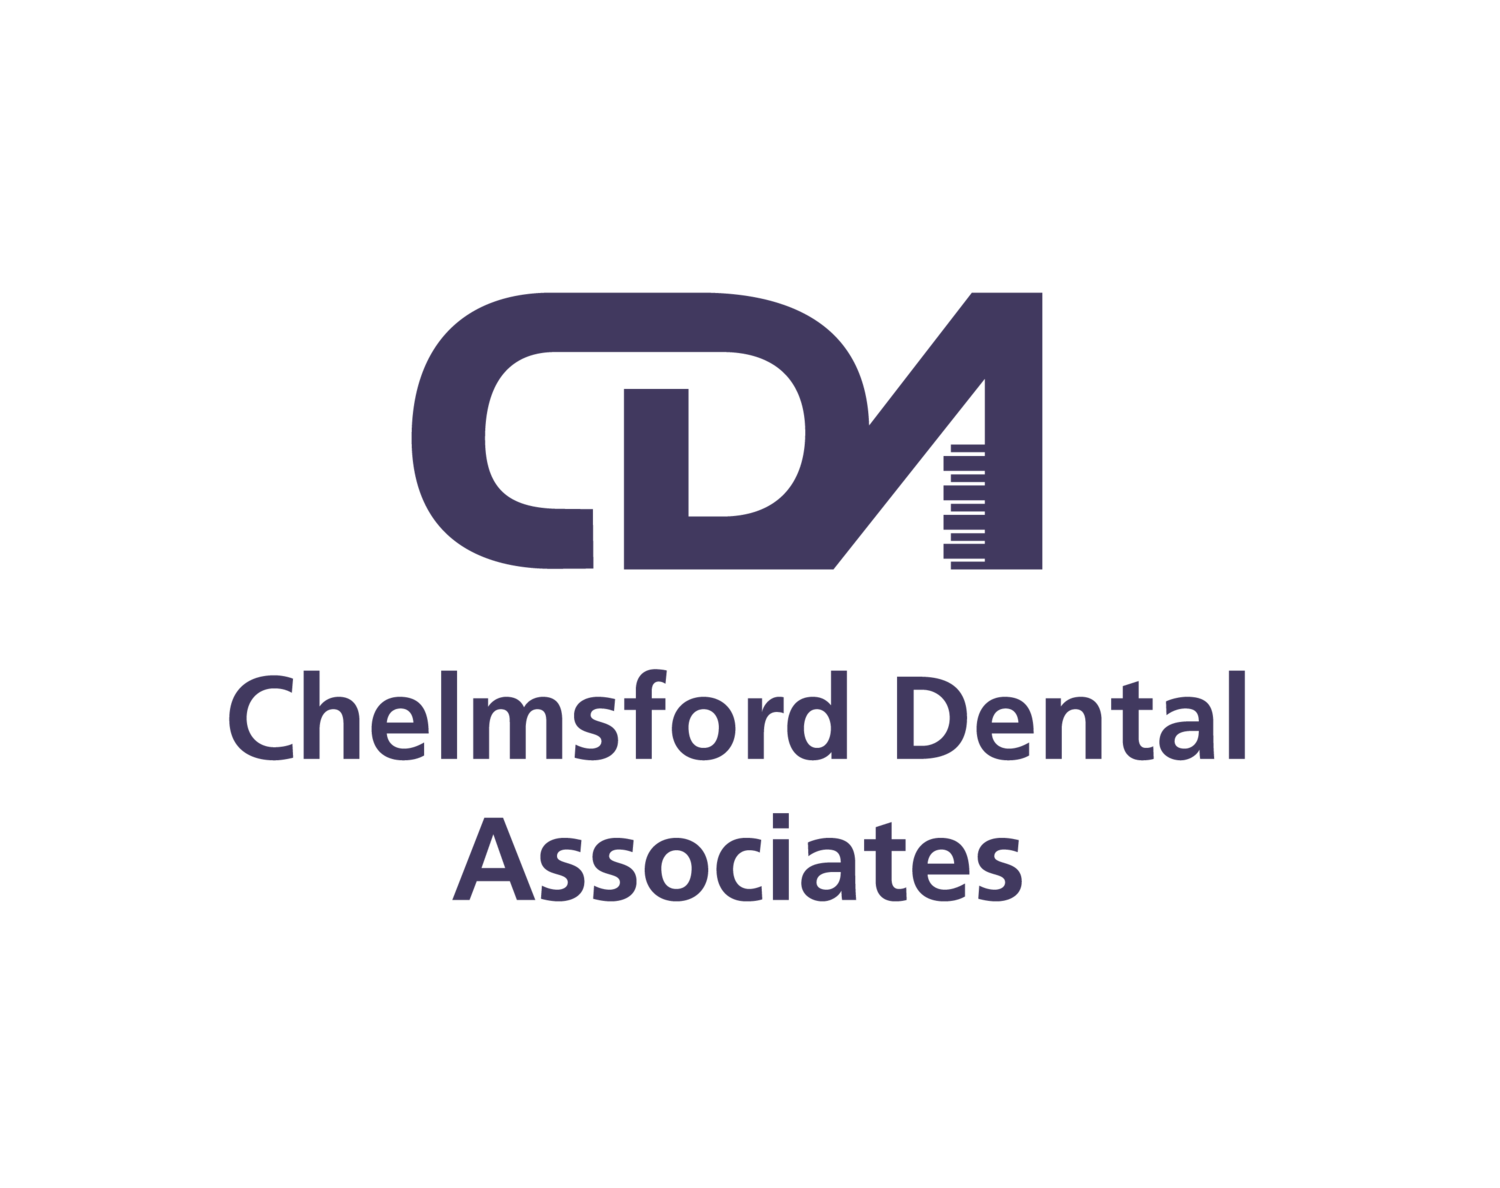 Chelmsford Dental Associates